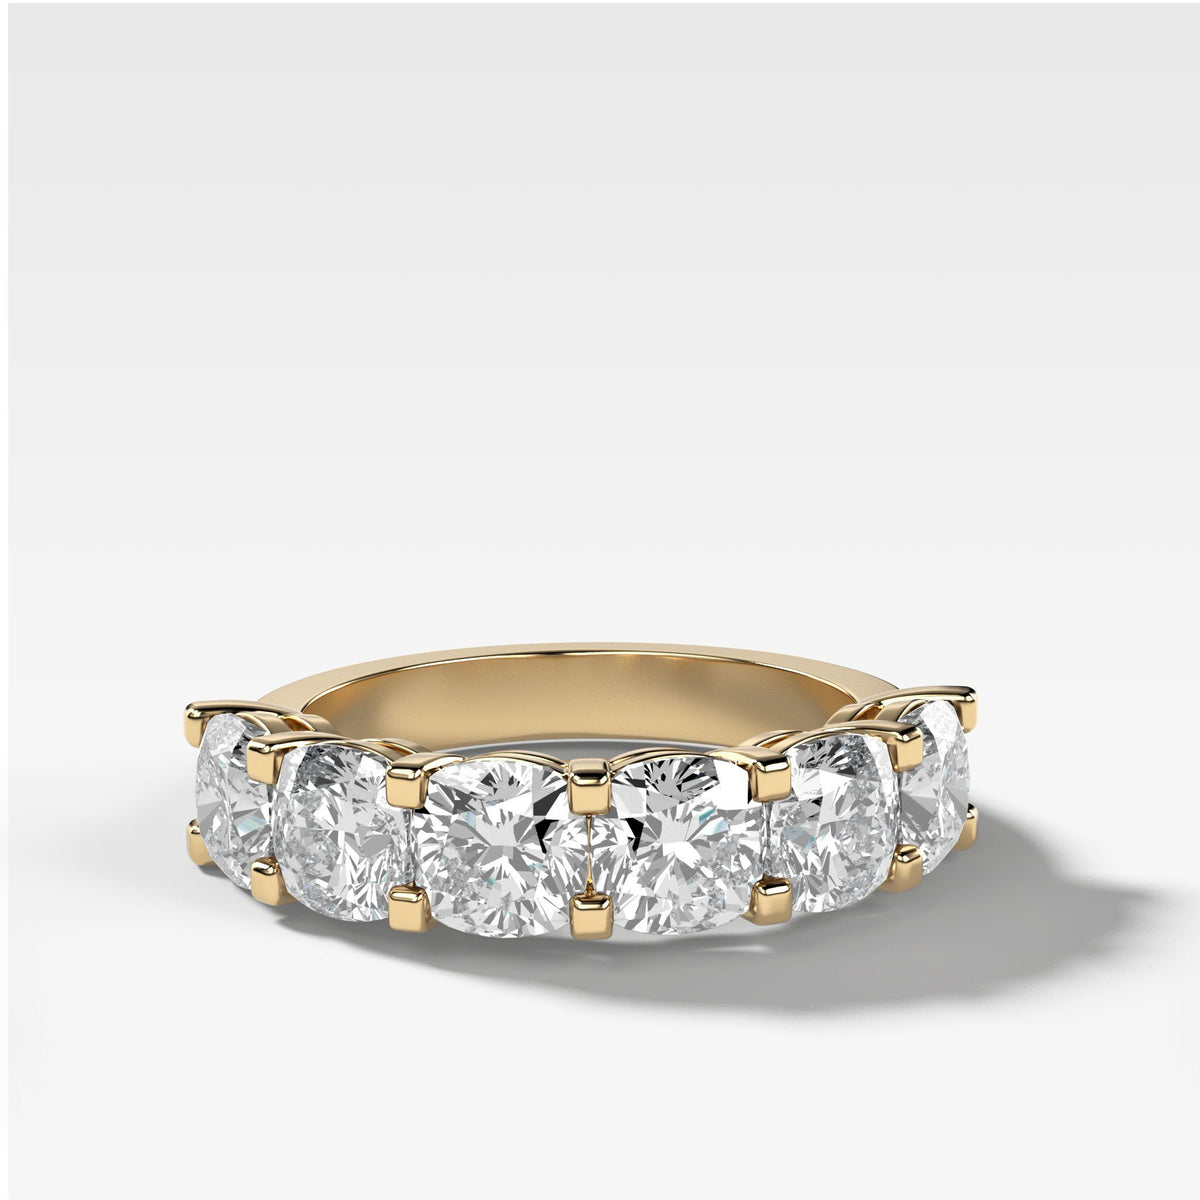 Six Stone Shared Prong Diamond Band With Cushion Cuts In Yellow Gold By Good Stone